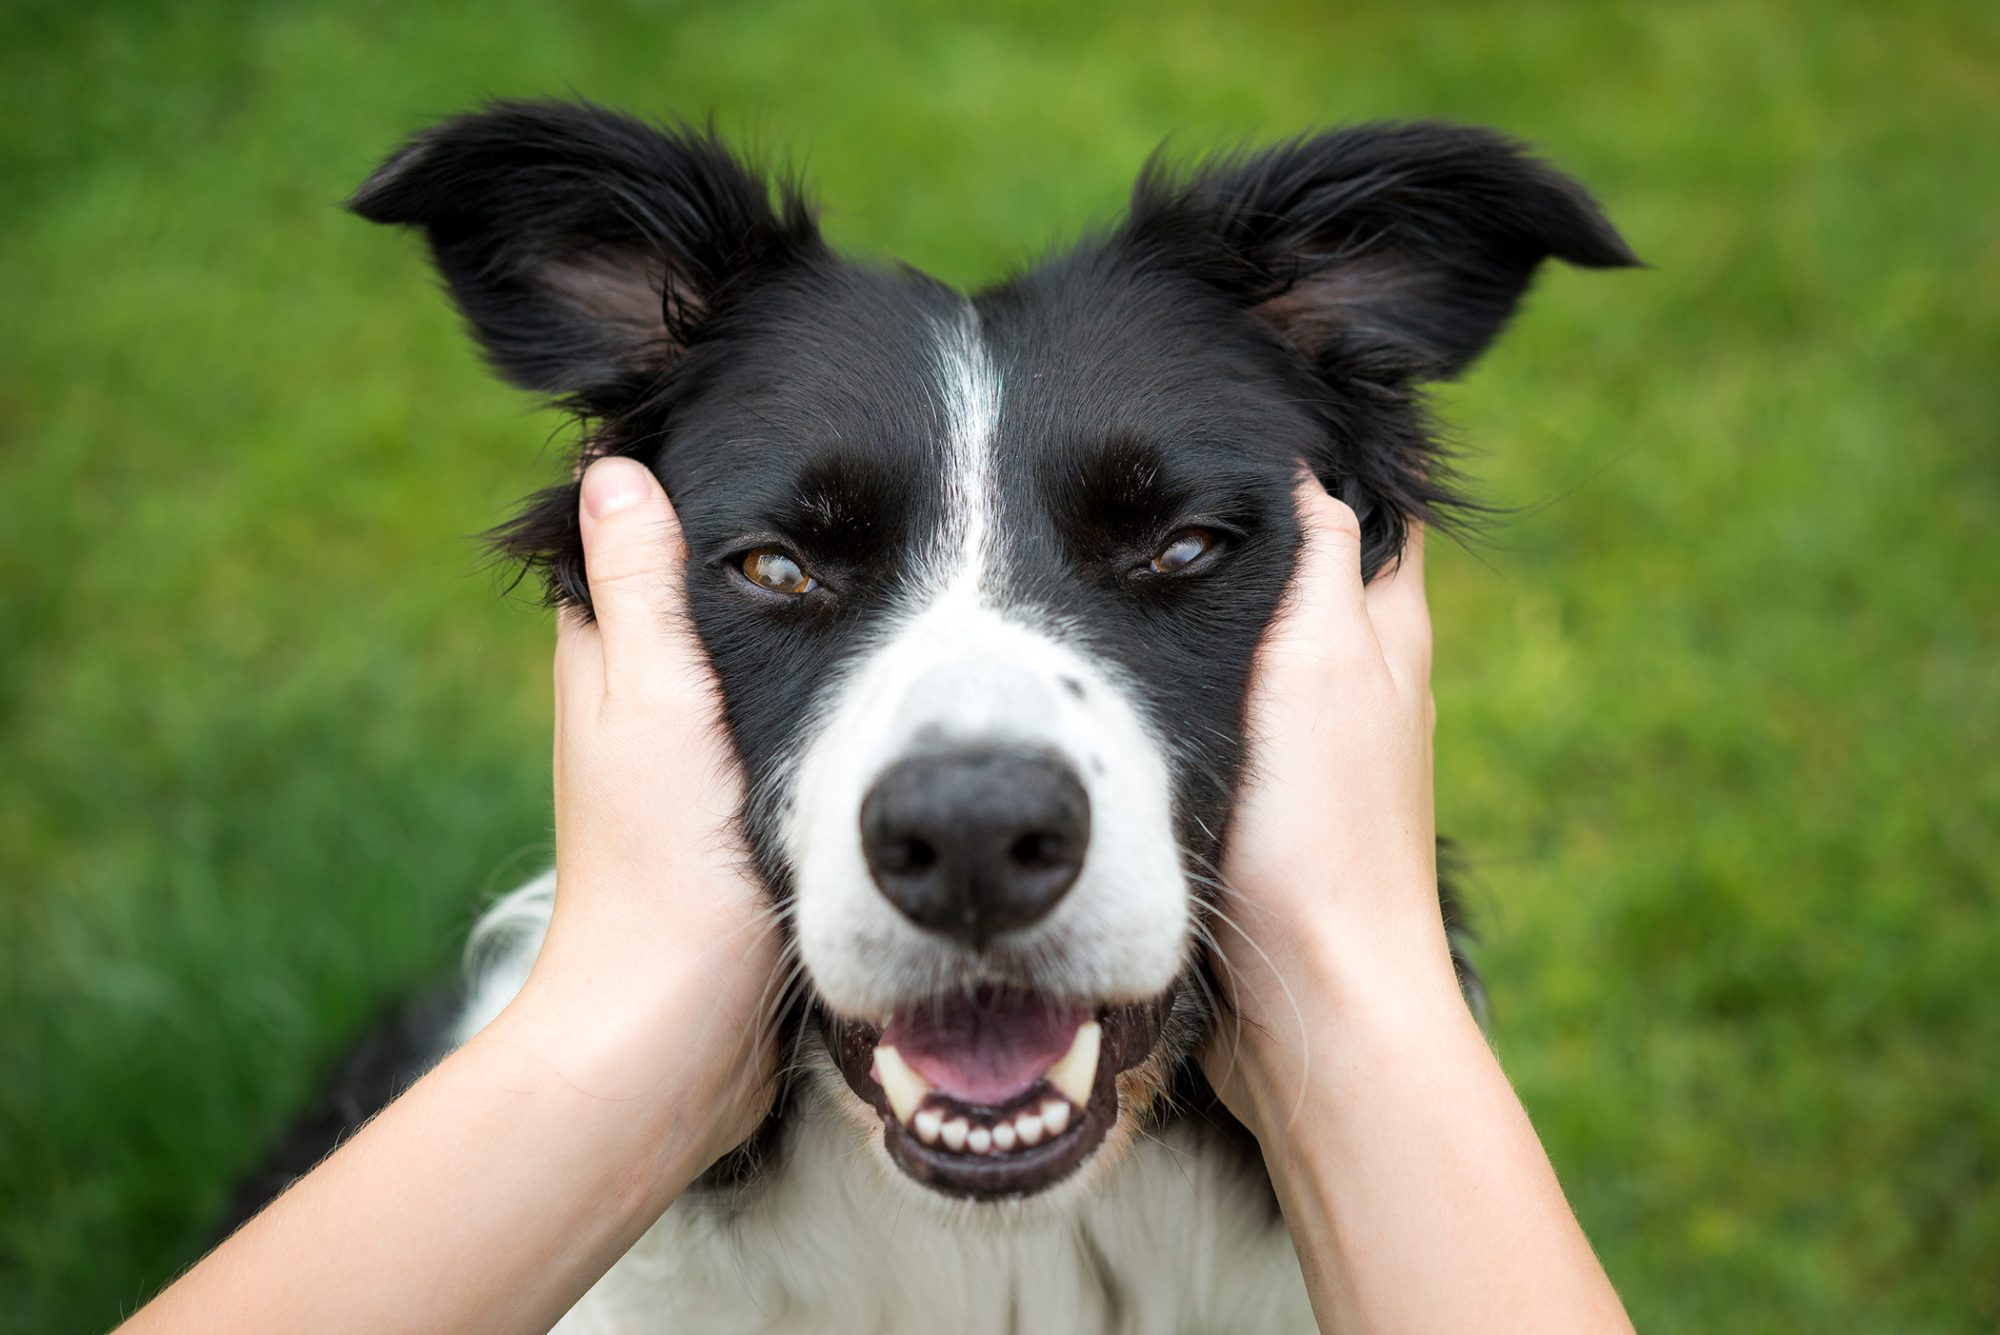 hands holding a smiling dog's face